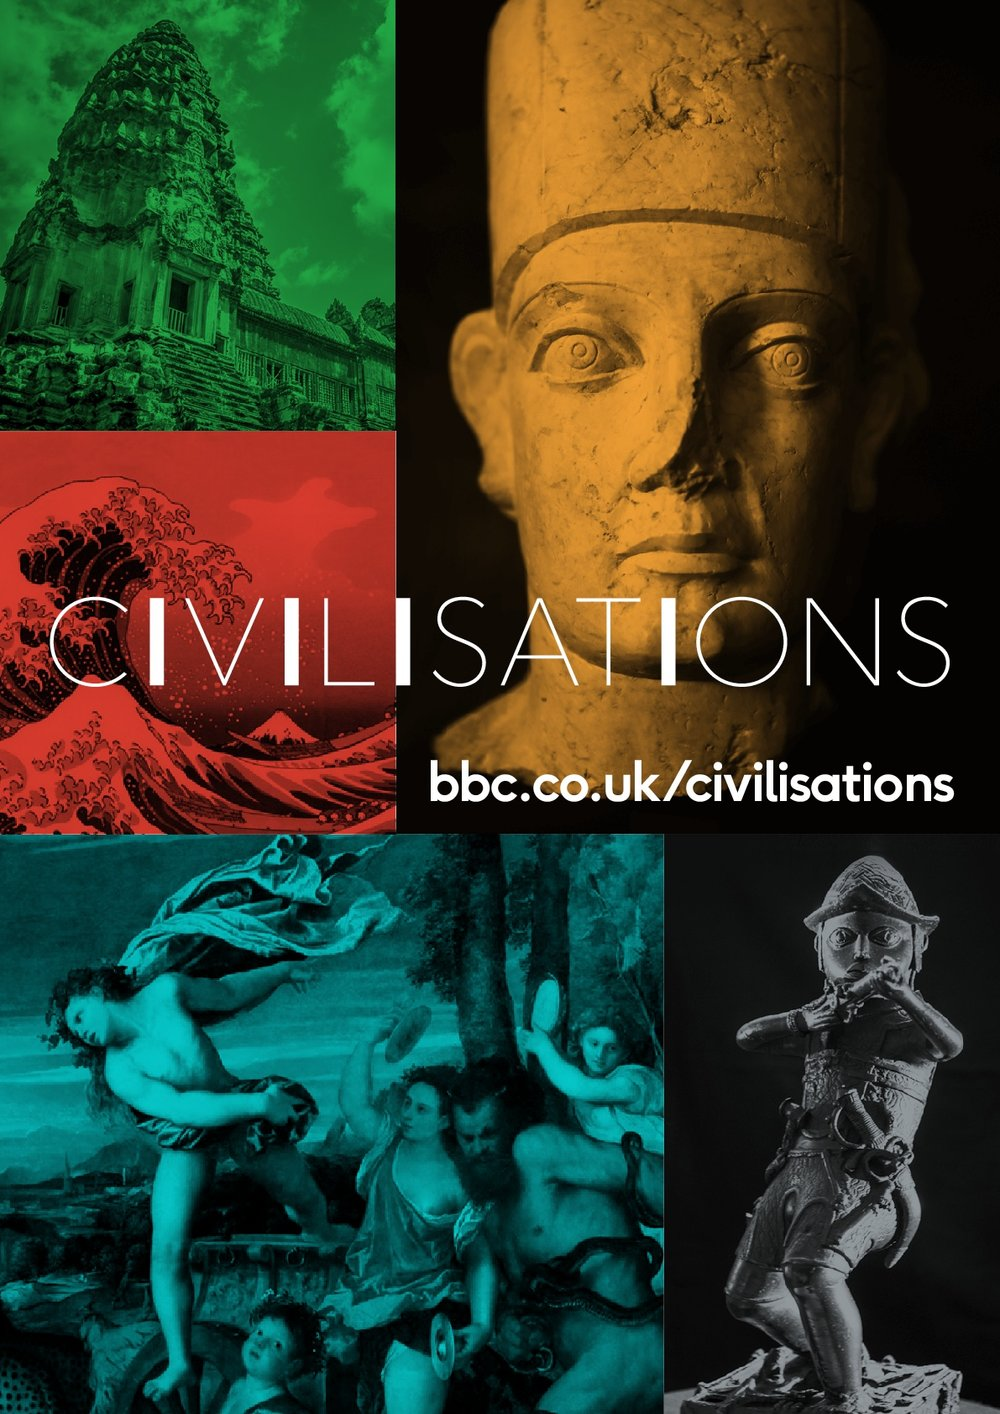 BBC Civilisations A4 Poster -001.jpg